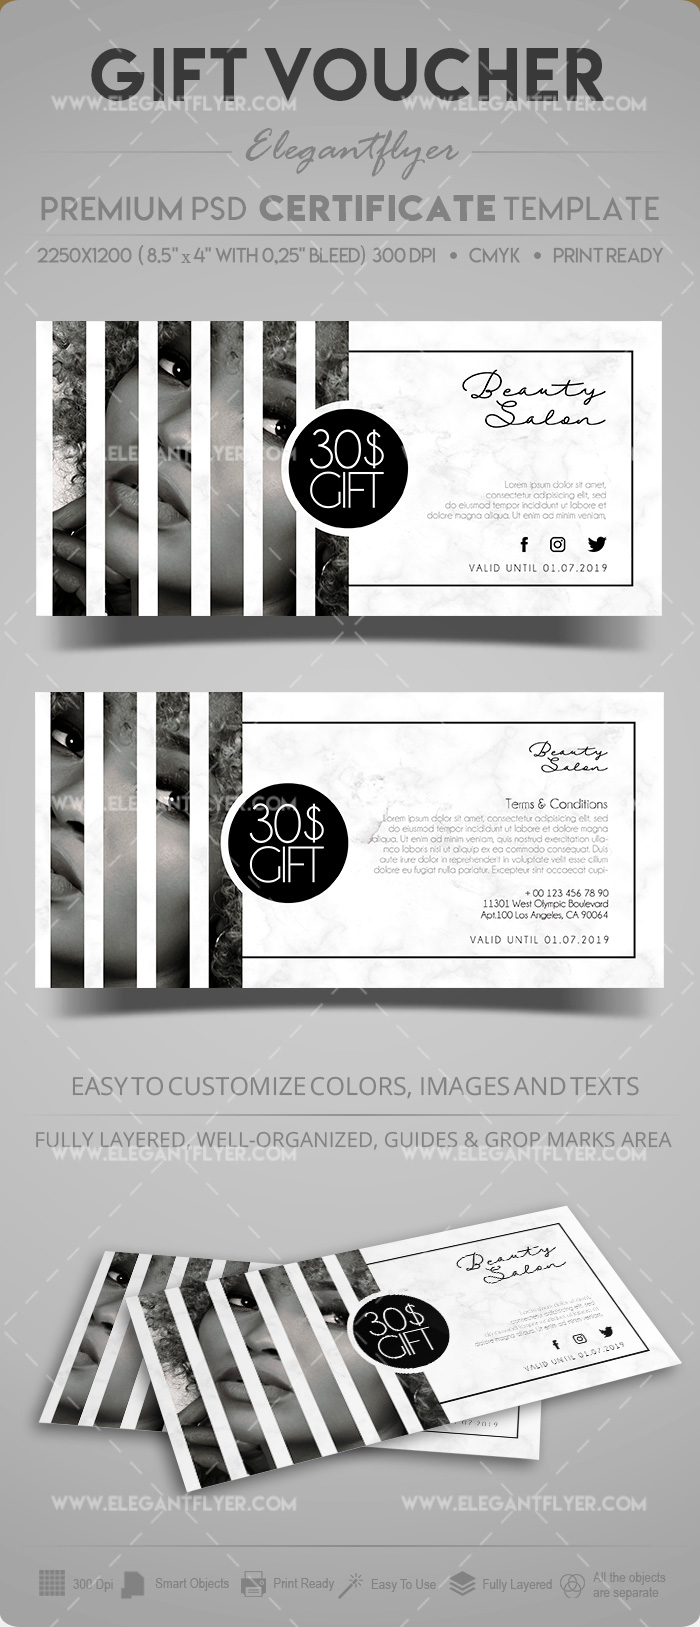 Beauty Salon – Gift Certificate Template in PSD